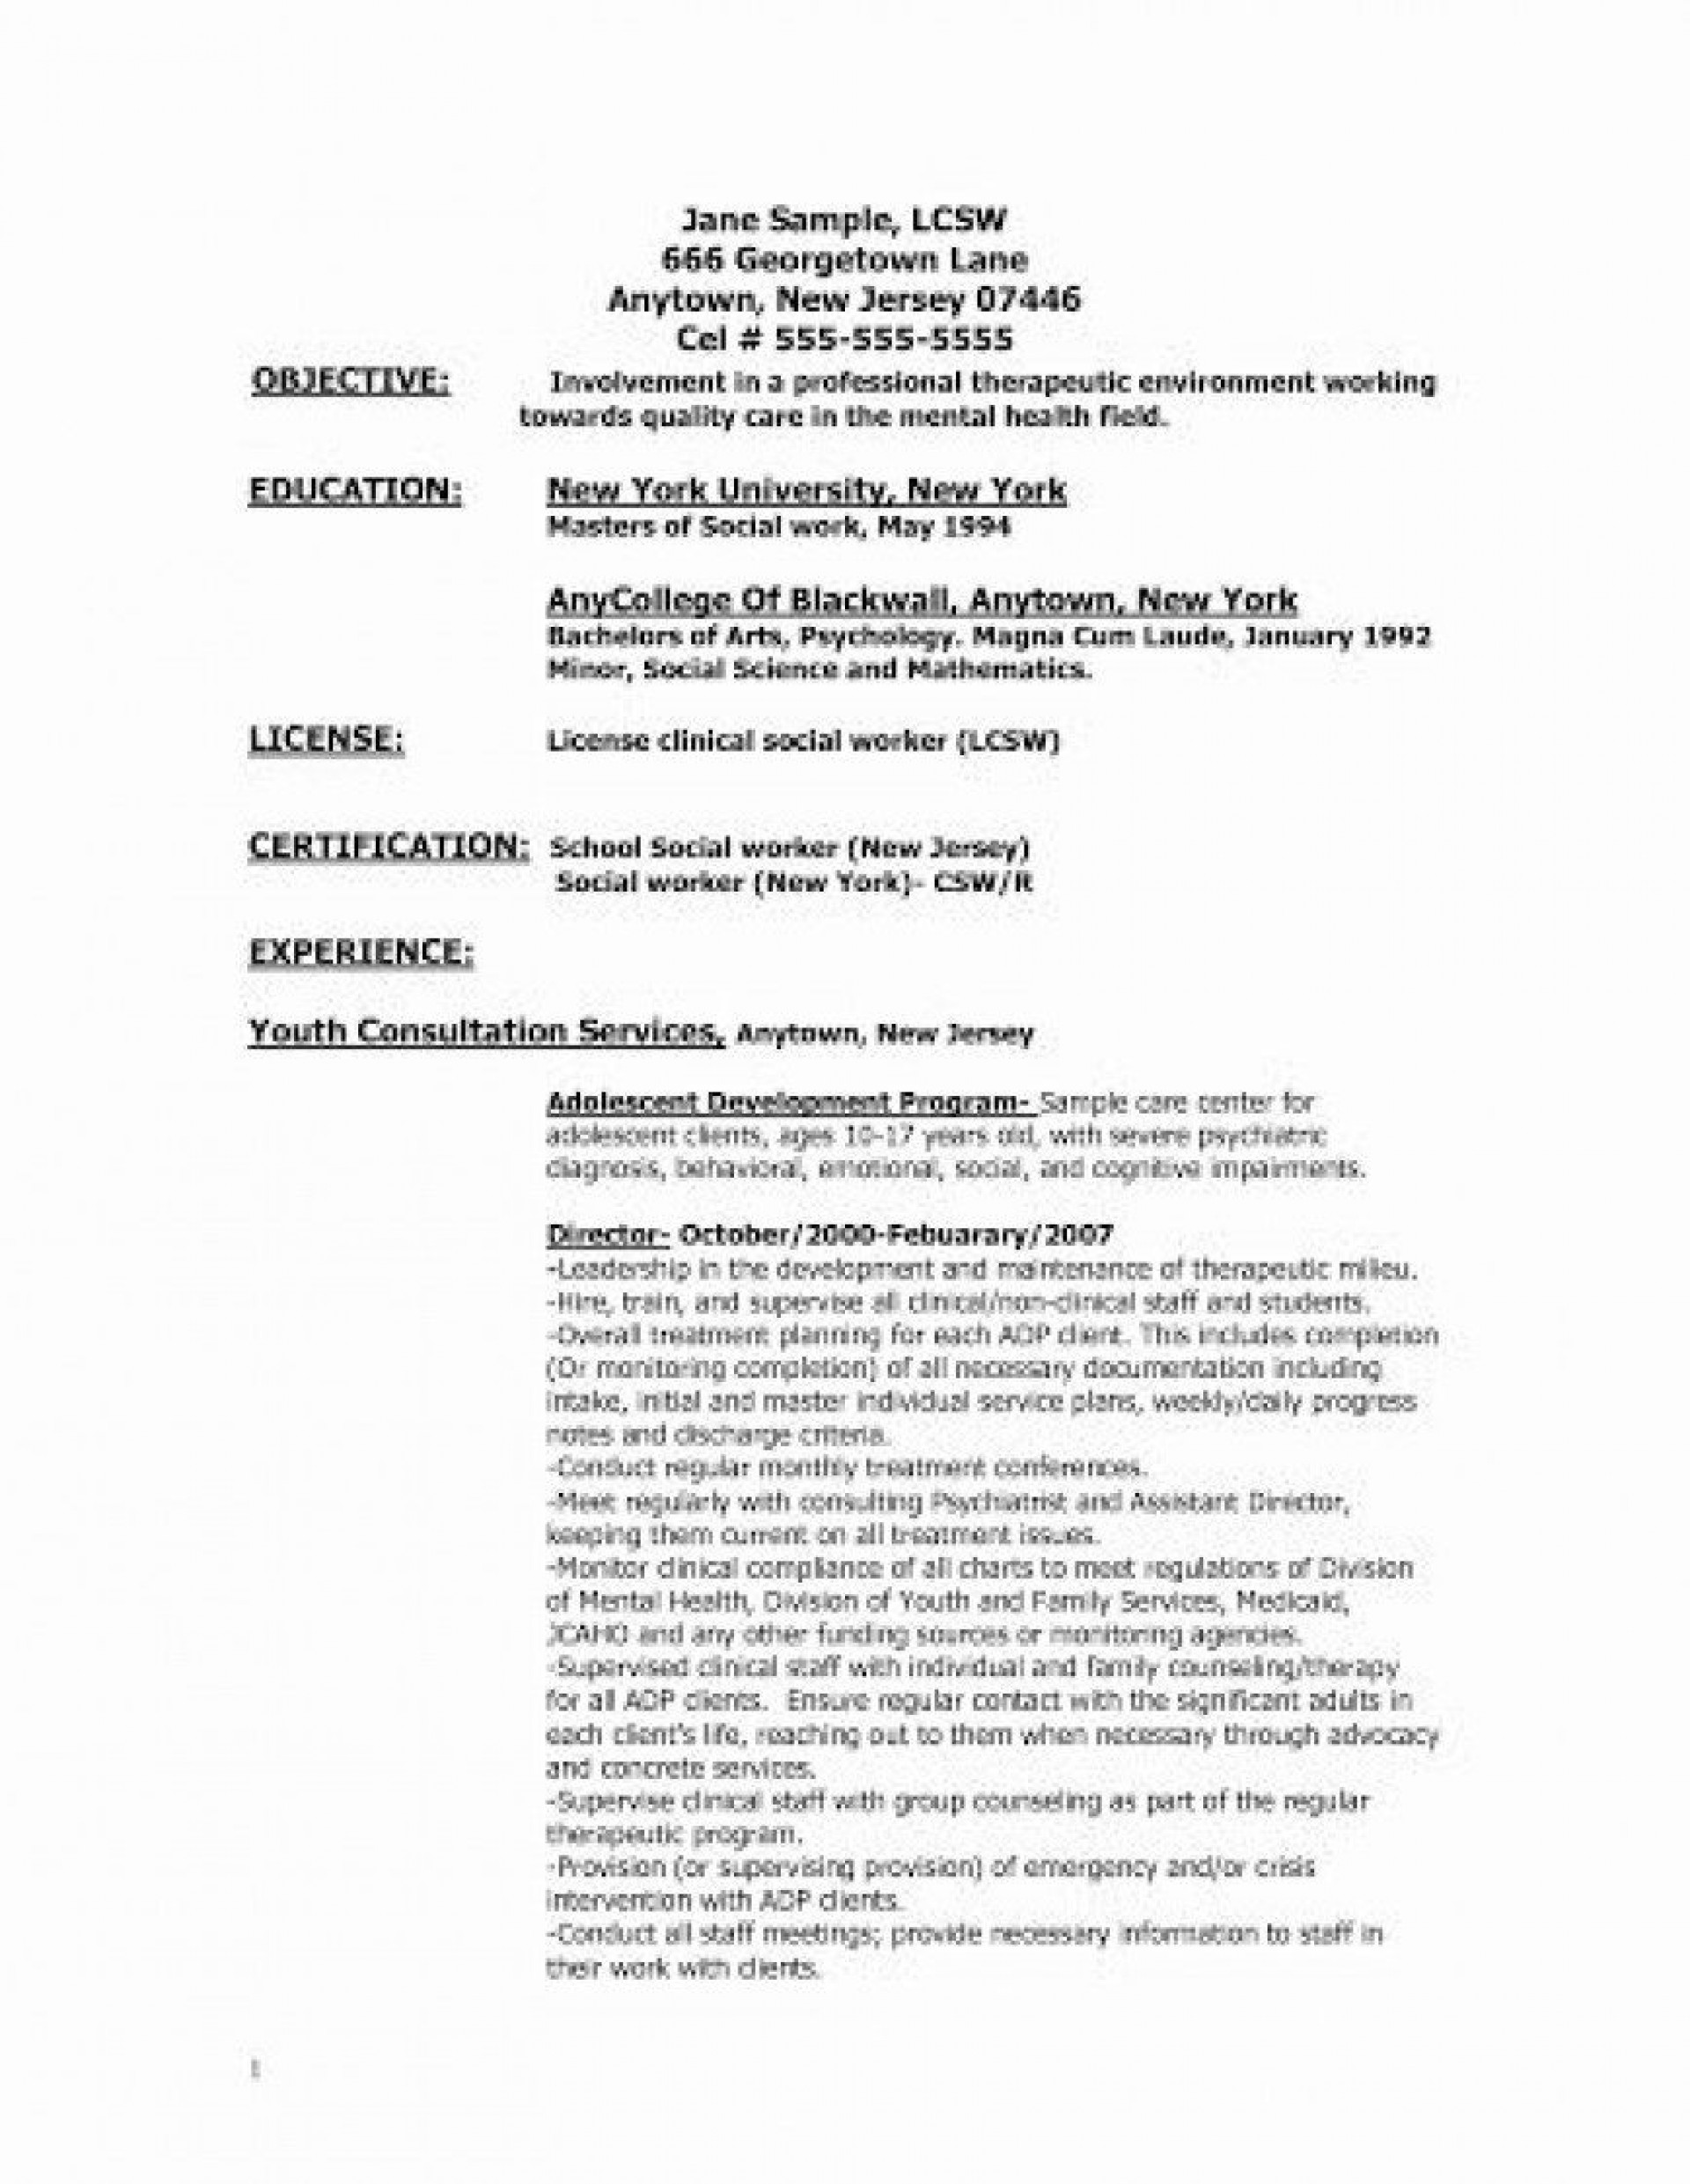 008 Dreaded Grad School Application Cv Template Photo  Graduate Microsoft Word1920